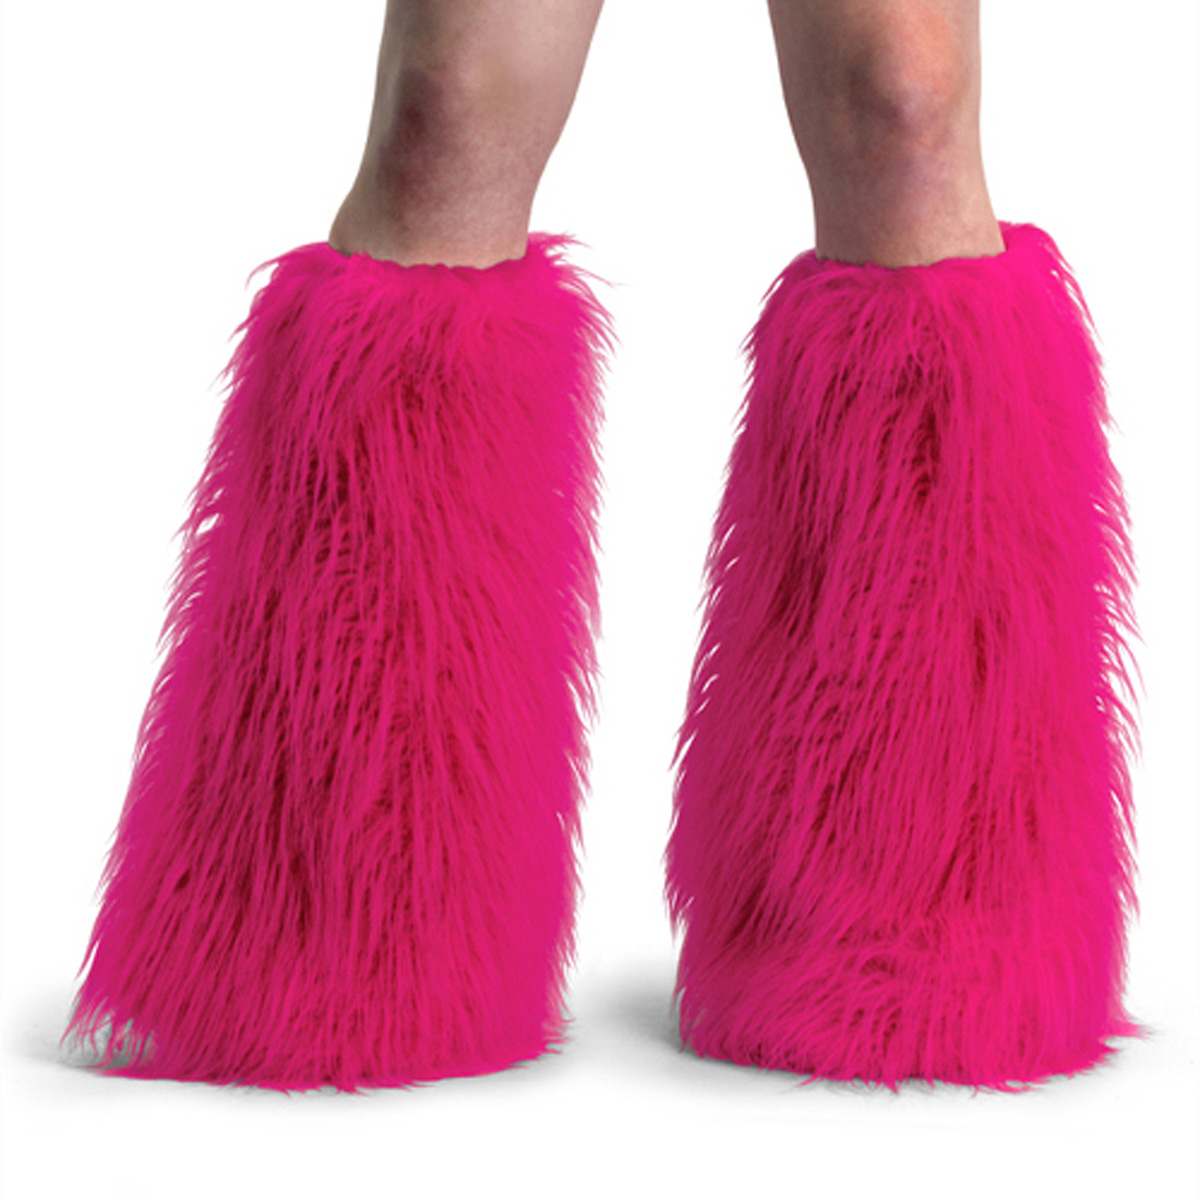 ACCESSORIES YETI-01 H.Pink Faux Fur Boot Sleeve/H. Pink Faux Fur